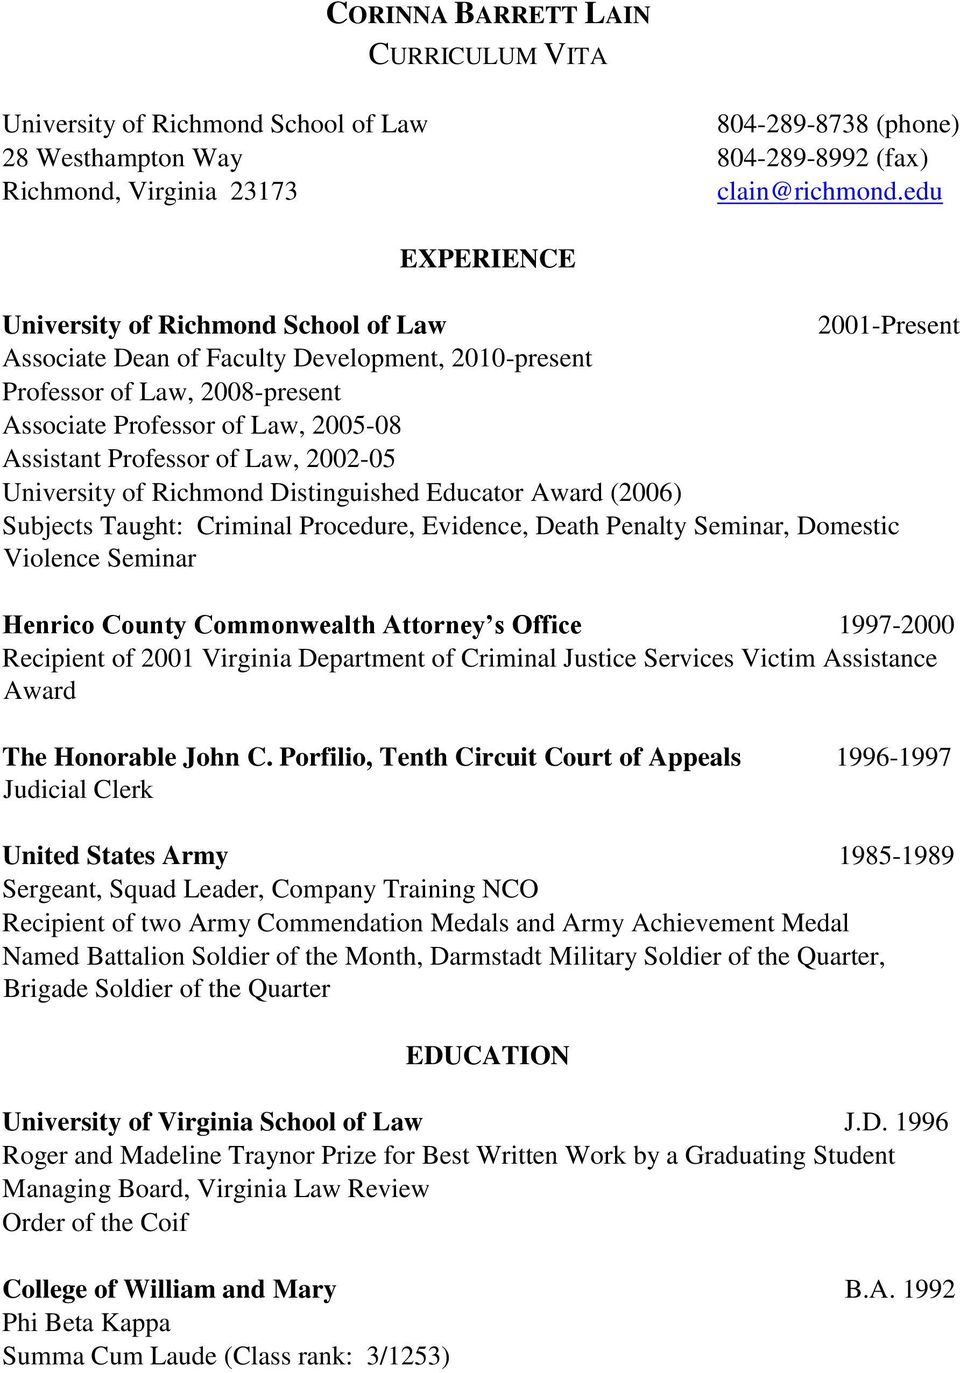 Professor of Law, 2002-05 University of Richmond Distinguished Educator Award (2006) Subjects Taught: Criminal Procedure, Evidence, Death Penalty Seminar, Domestic Violence Seminar Henrico County